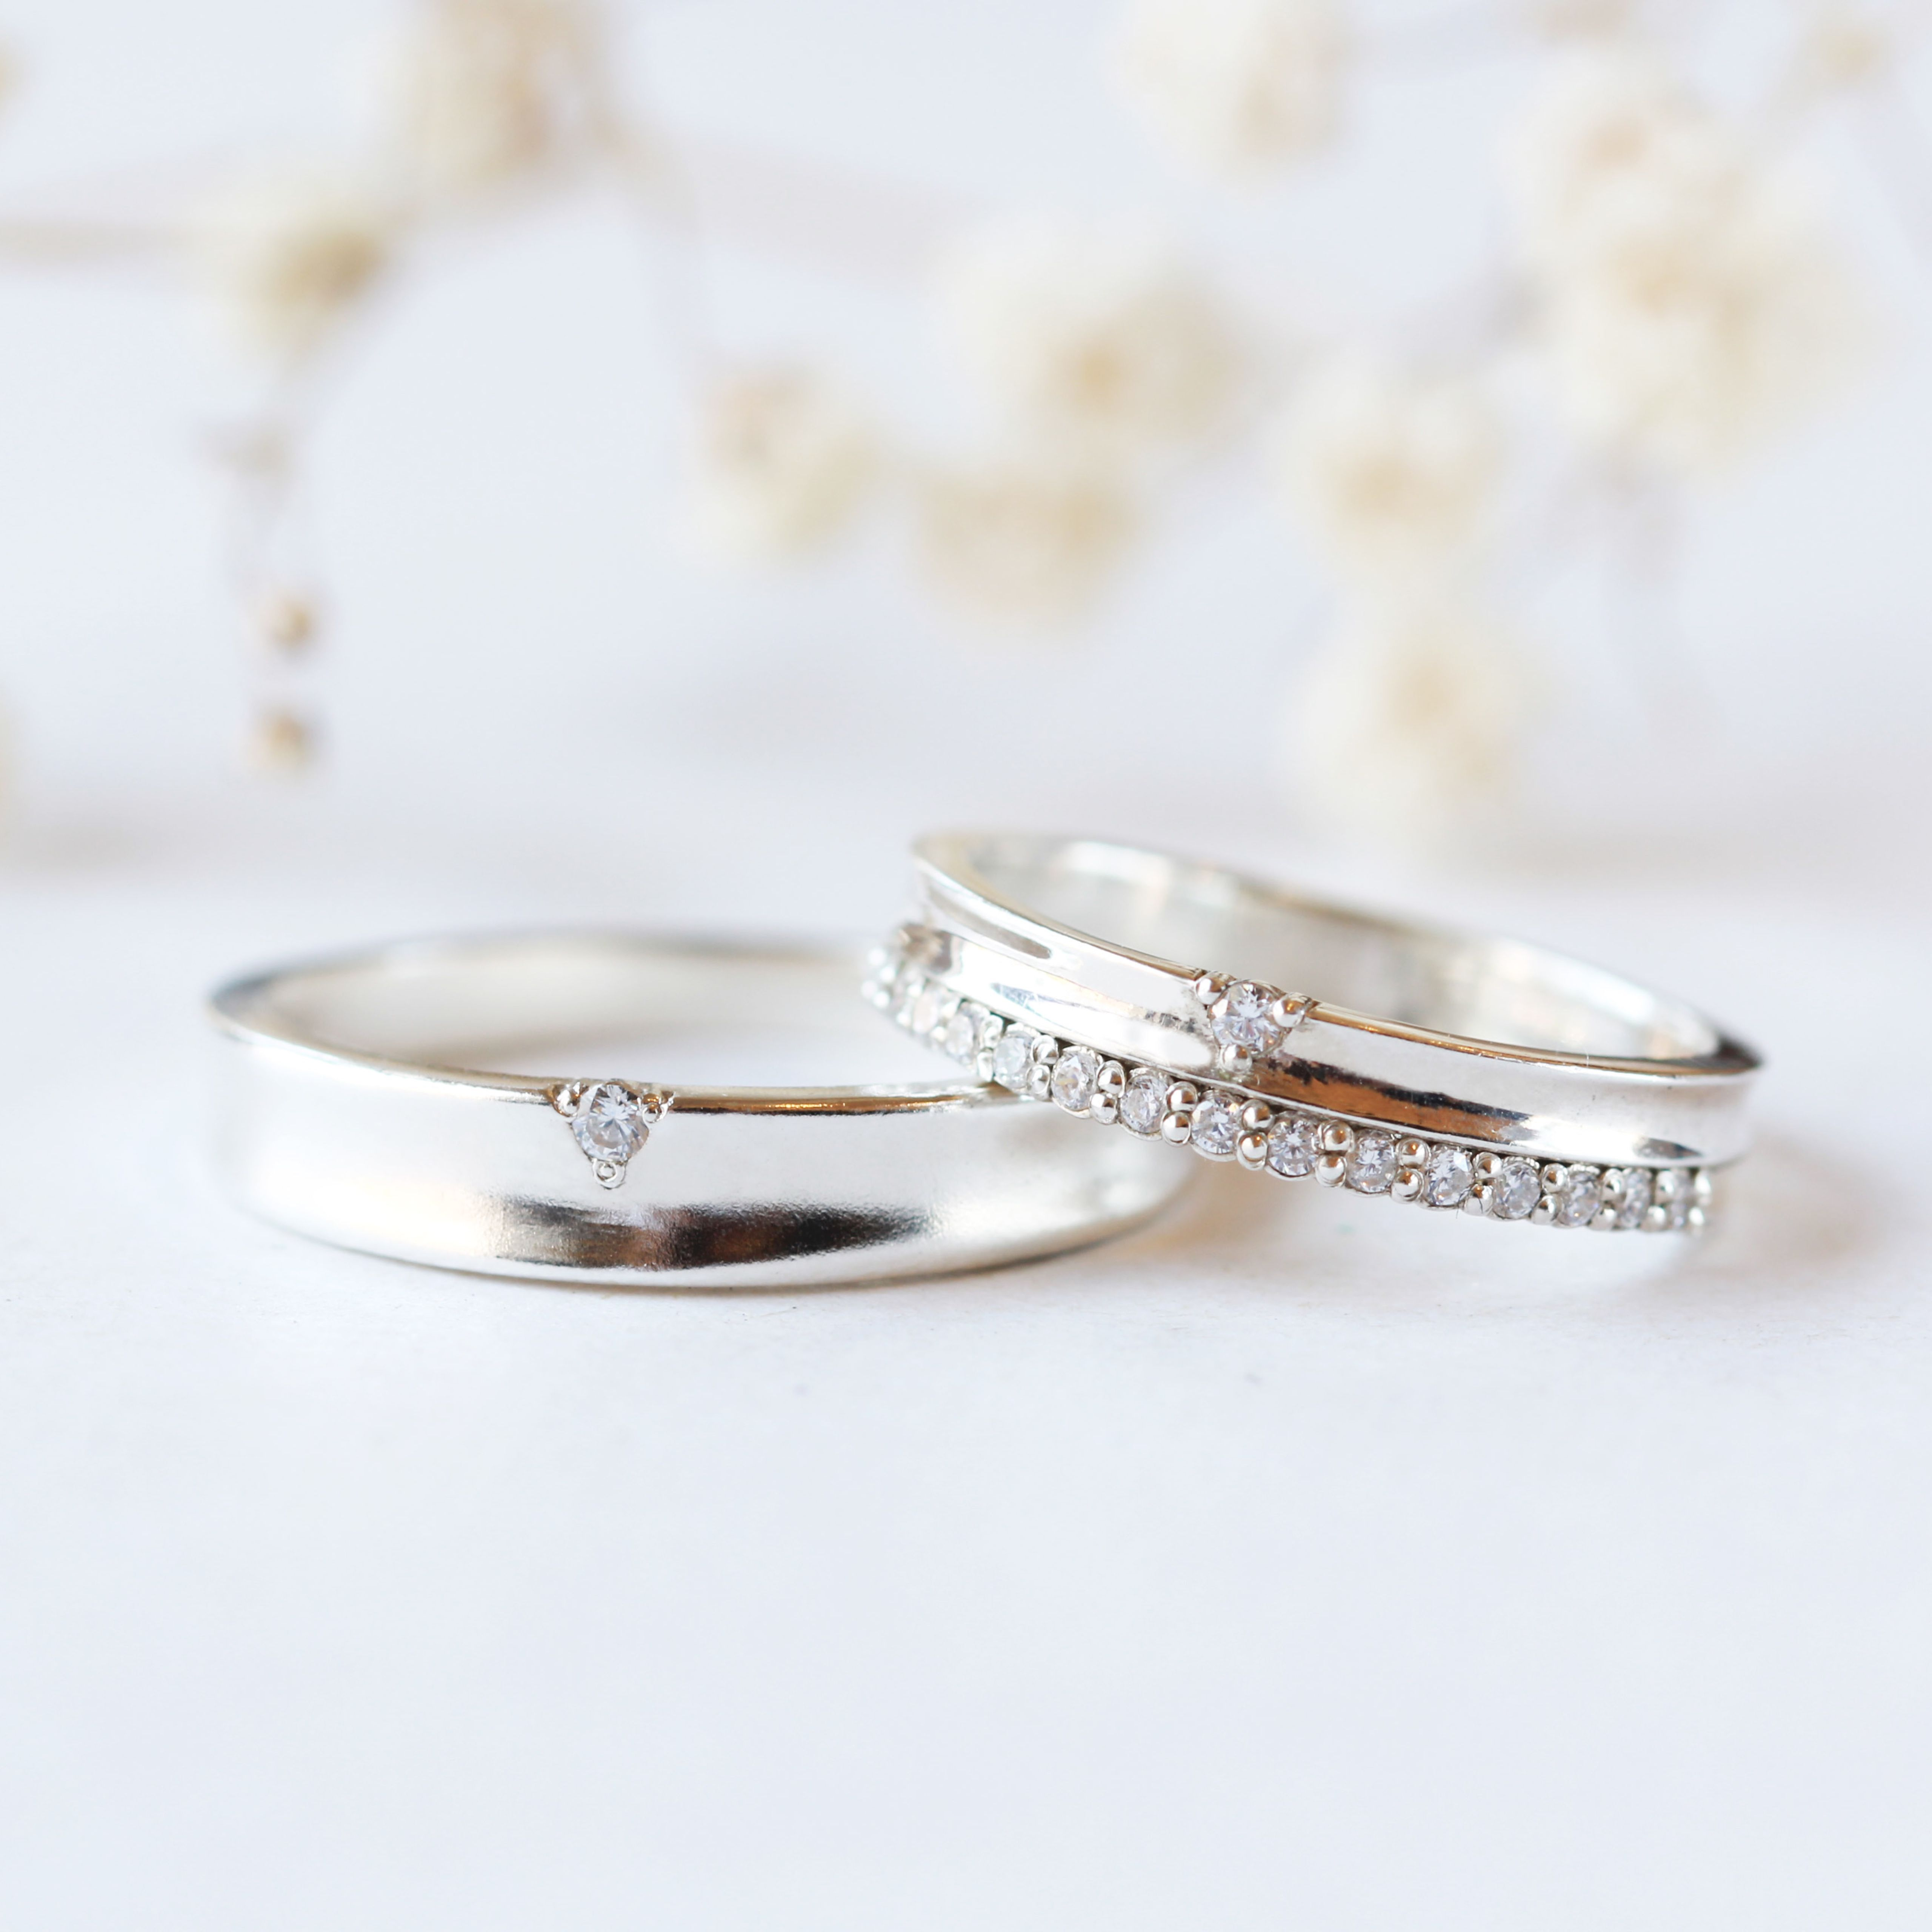 Wedding Matching Band His And Hers Couple Rings Halfway Stone Etsy In 2020 Diamond Wedding Bands Wedding Rings Sets His And Hers White Gold Engagement Rings Vintage